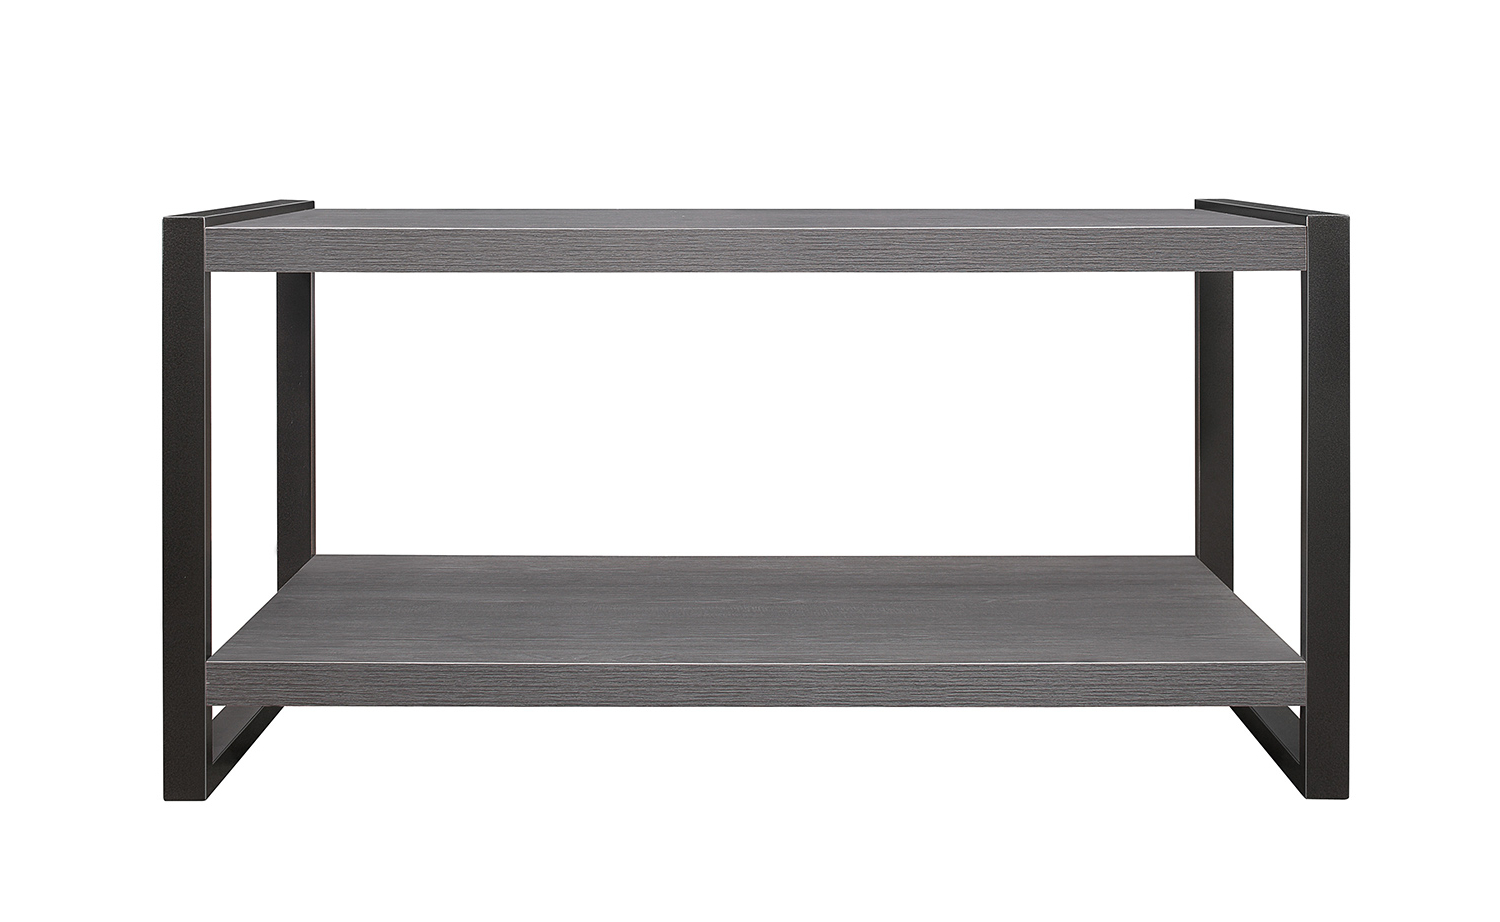 Homelegance Dogue Cocktail/coffee Table – Gunmetal Gray 3606 30 Throughout Well Known Gunmetal Coffee Tables (Gallery 16 of 20)